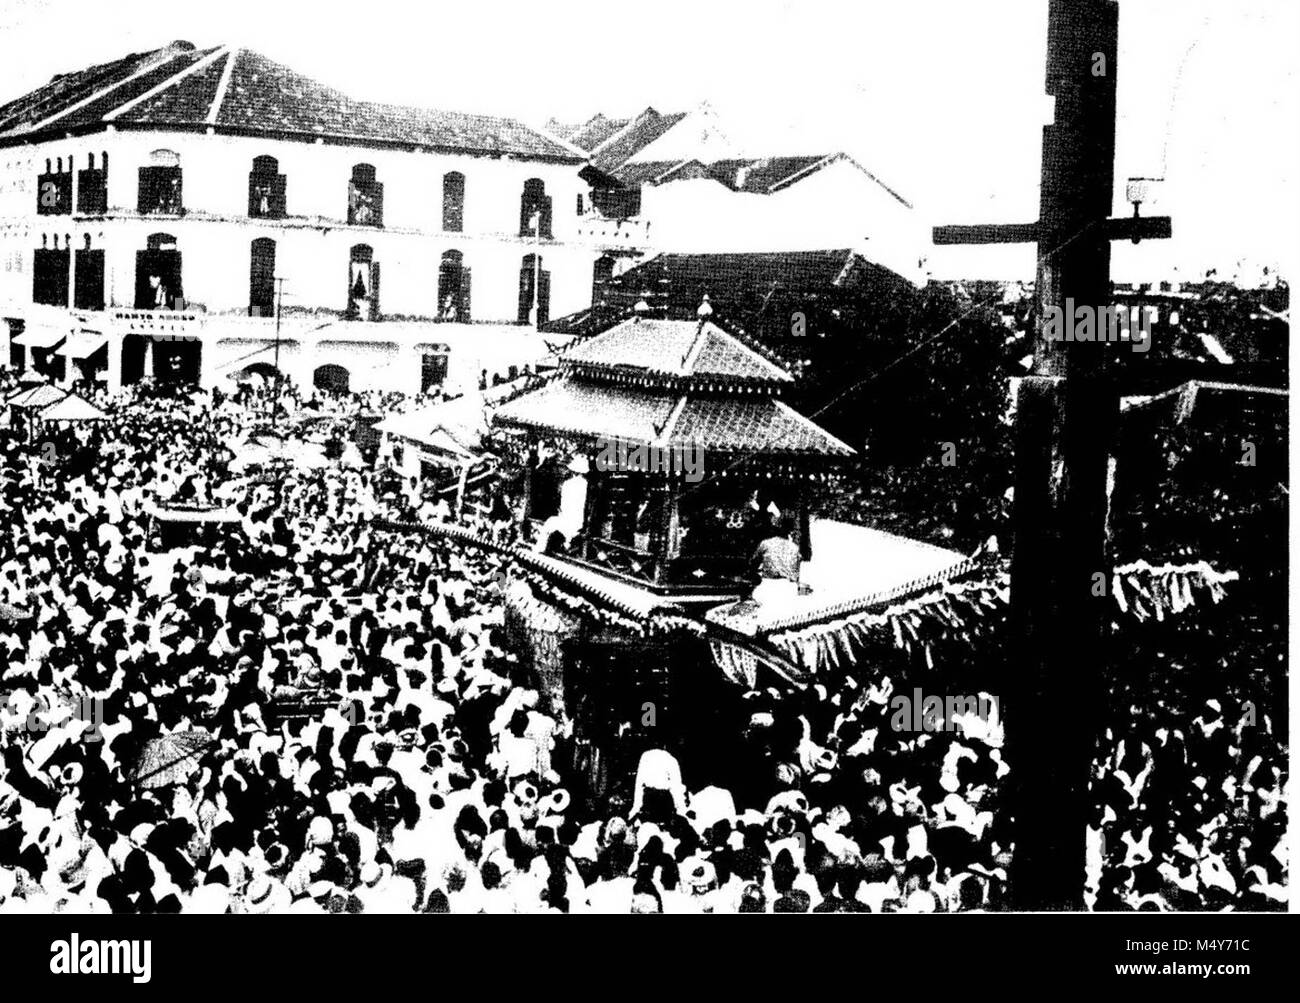 Thousands flocked into the streets of Kota Bharu to witness the Burung Petala Procession in 1933. - Stock Image